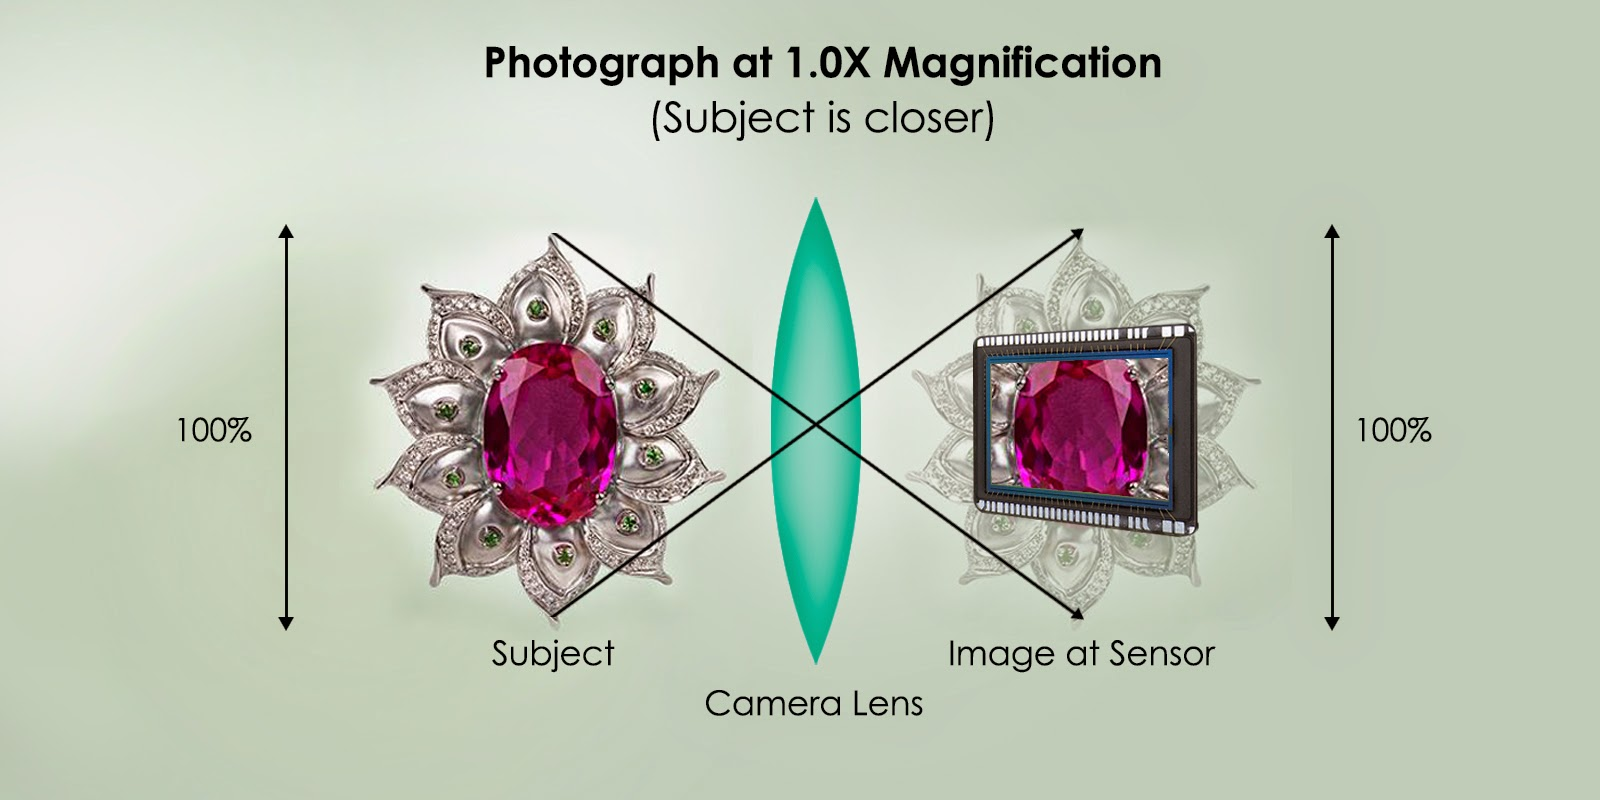 Photograph at 1.0x magnification